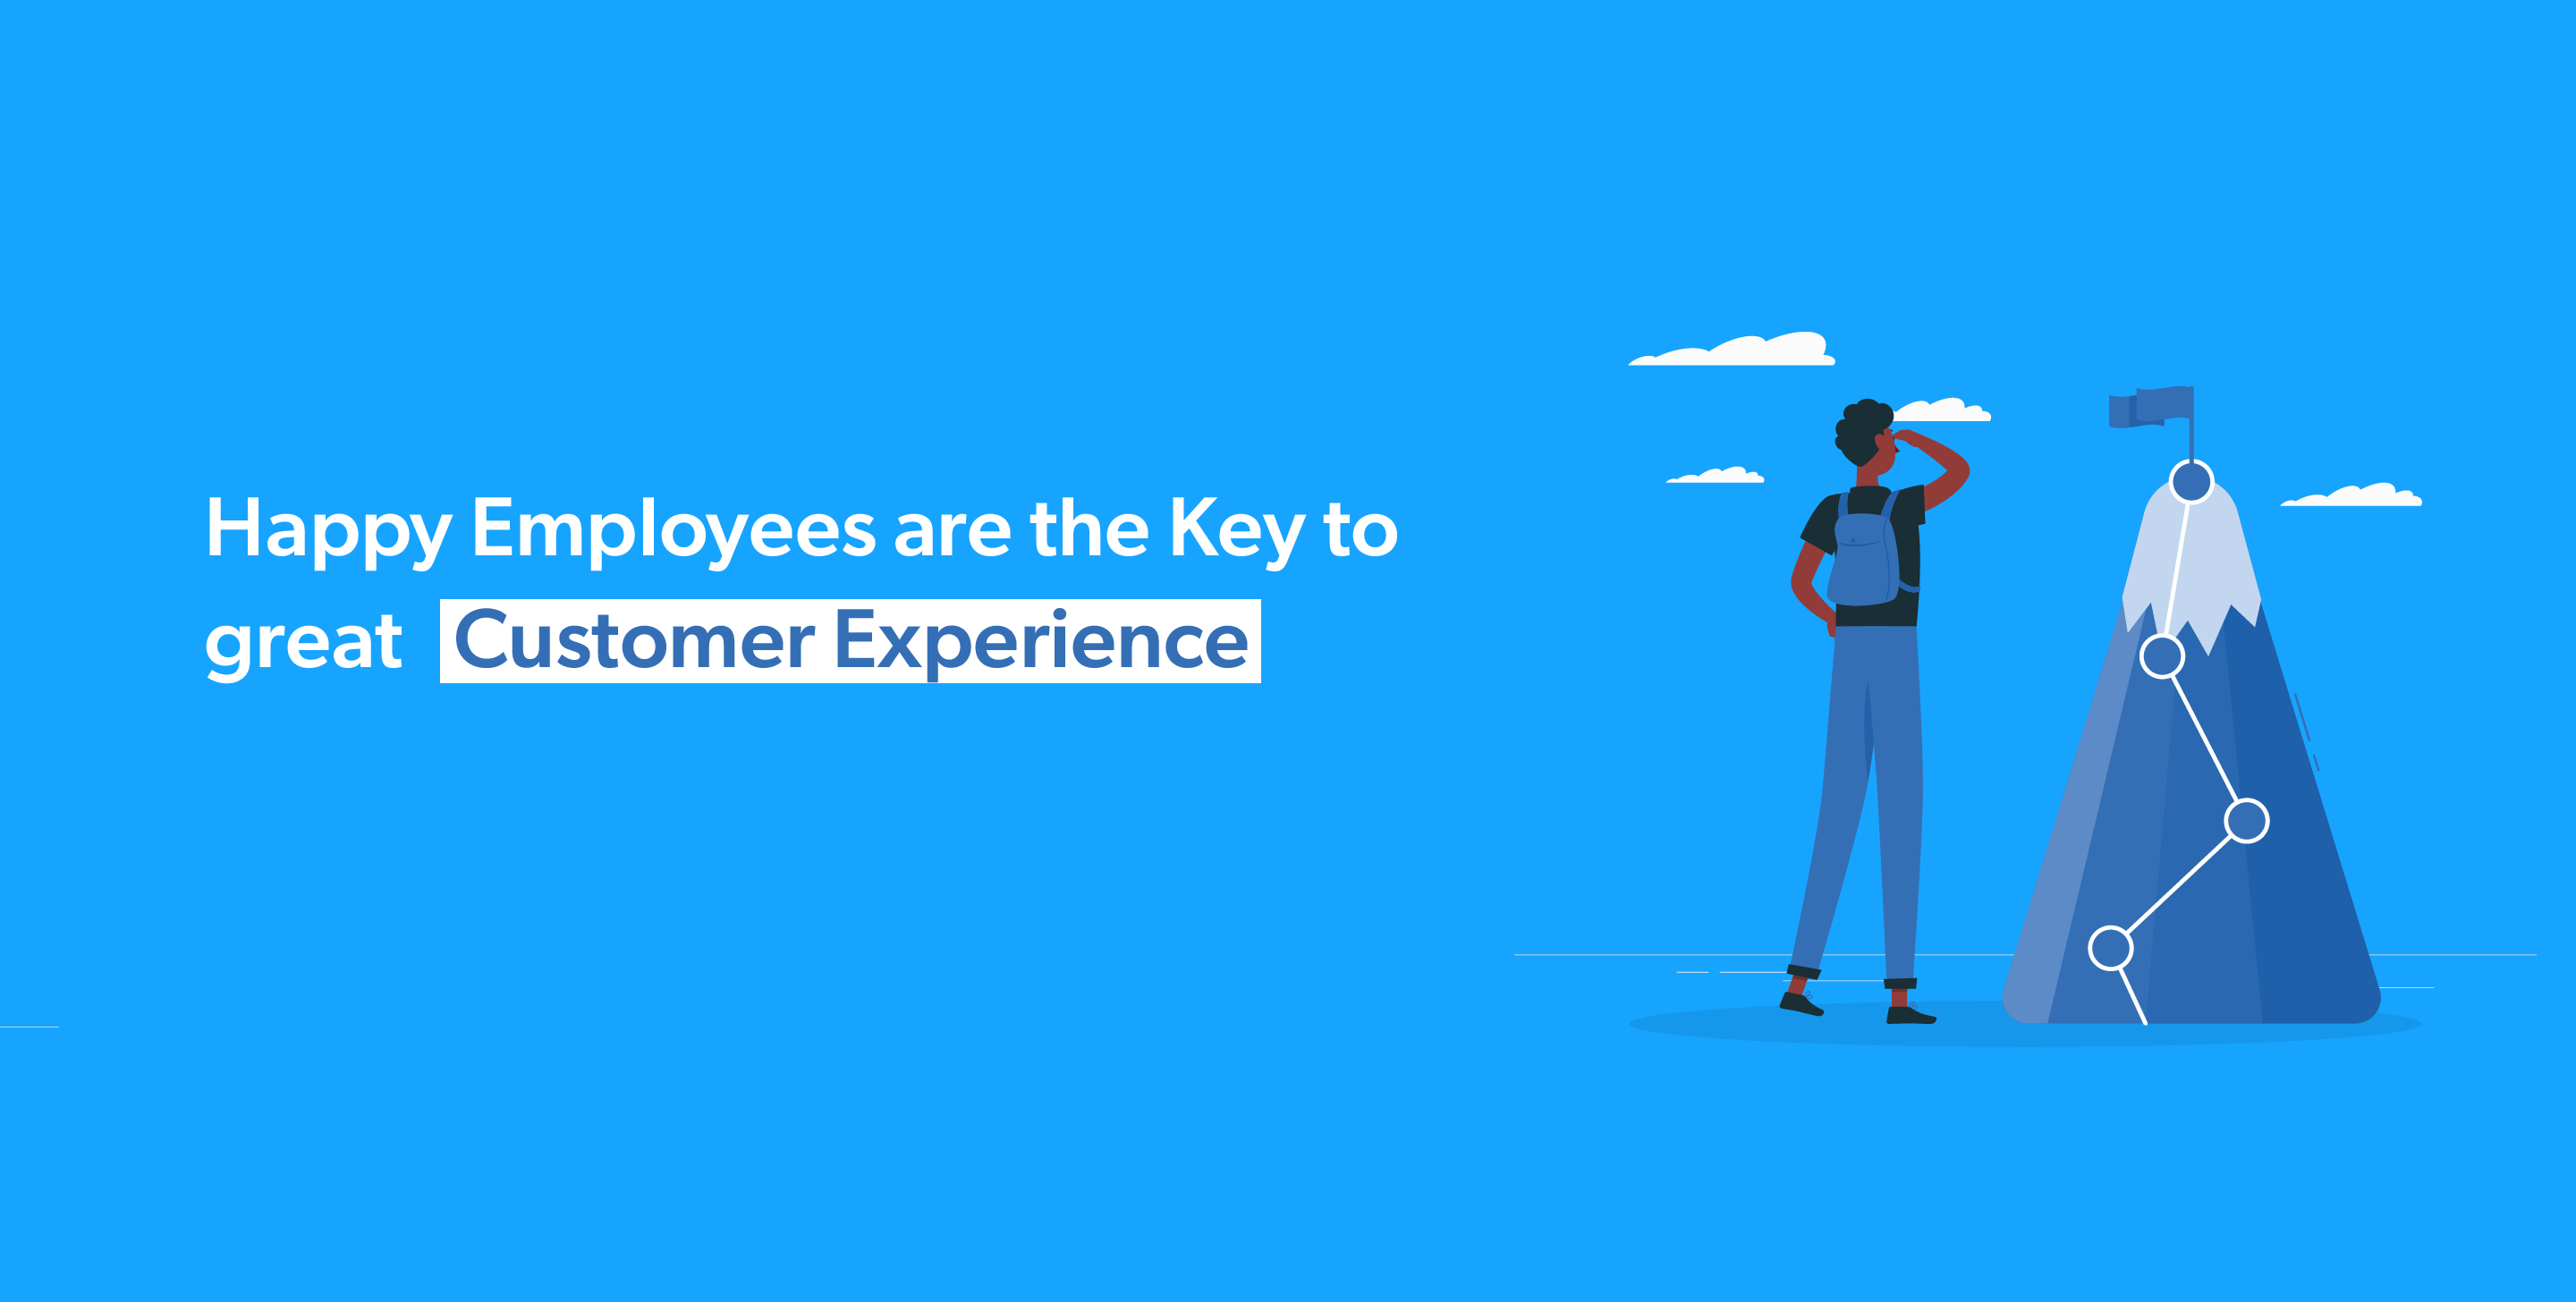 Happy Employees are the Key to great Customer Experience.